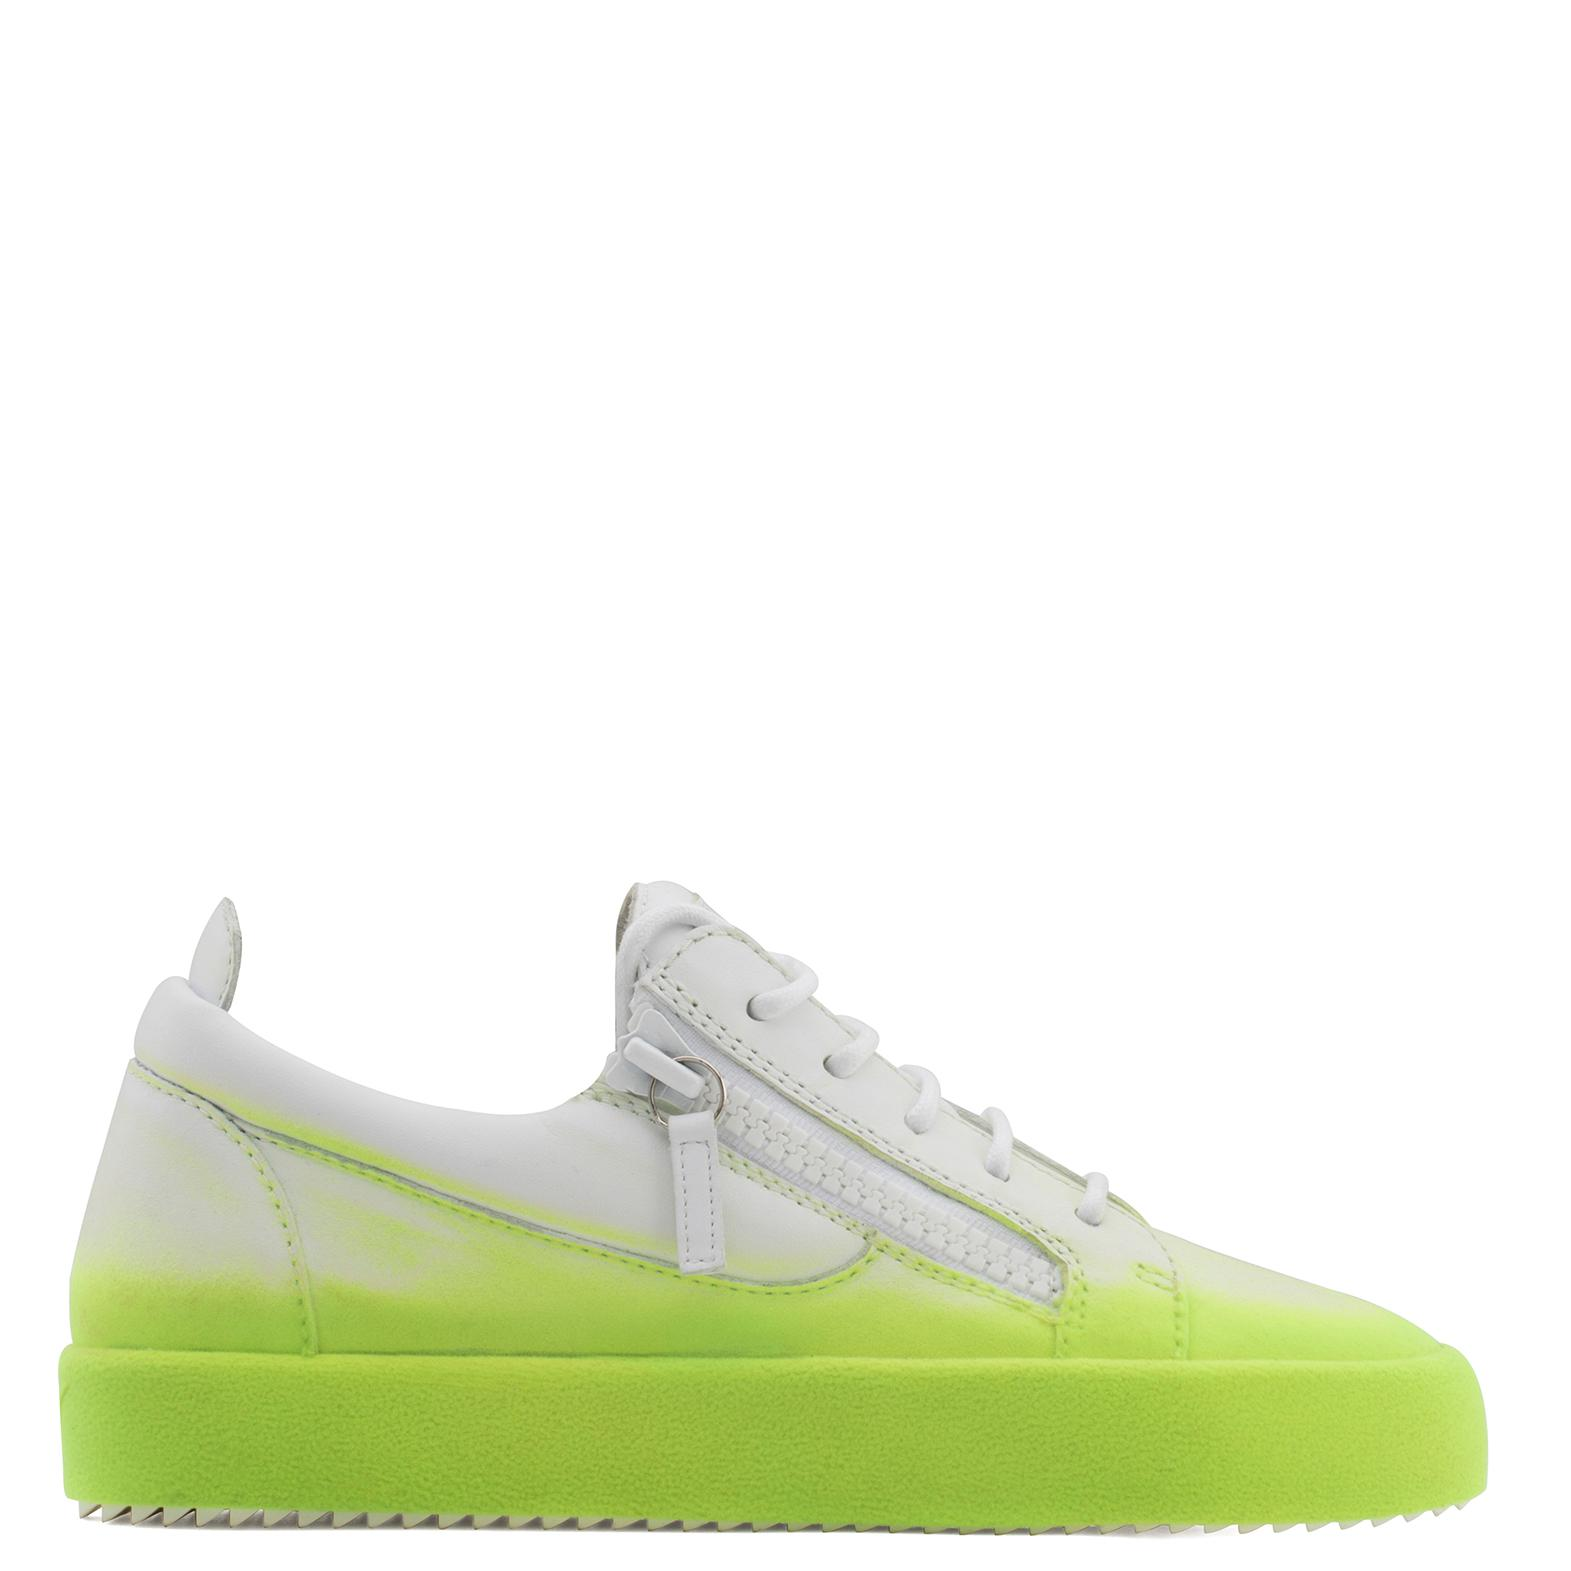 Giuseppe Zanotti White calfskin leather low-top sneaker with yellow flocking patina NEW UNFINISHED Shopping Online Free Shipping Outlet Locations Sale Explore Buy Cheap With Credit Card Discount Footaction Rc9AUrlj